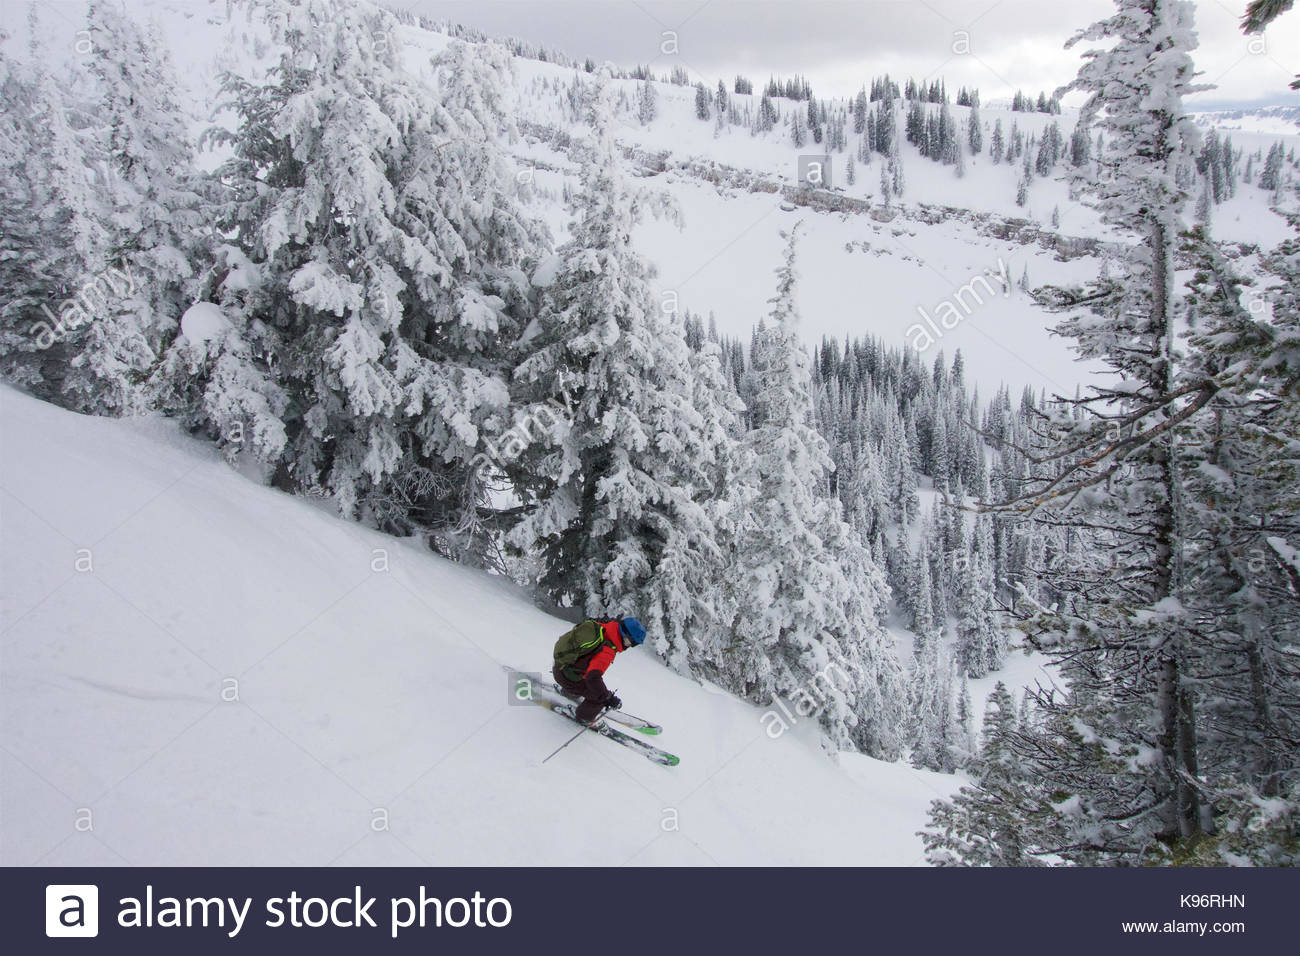 A teen boy downhill skiing with rime covered trees in the mountains on a cloudy day. - Stock Image